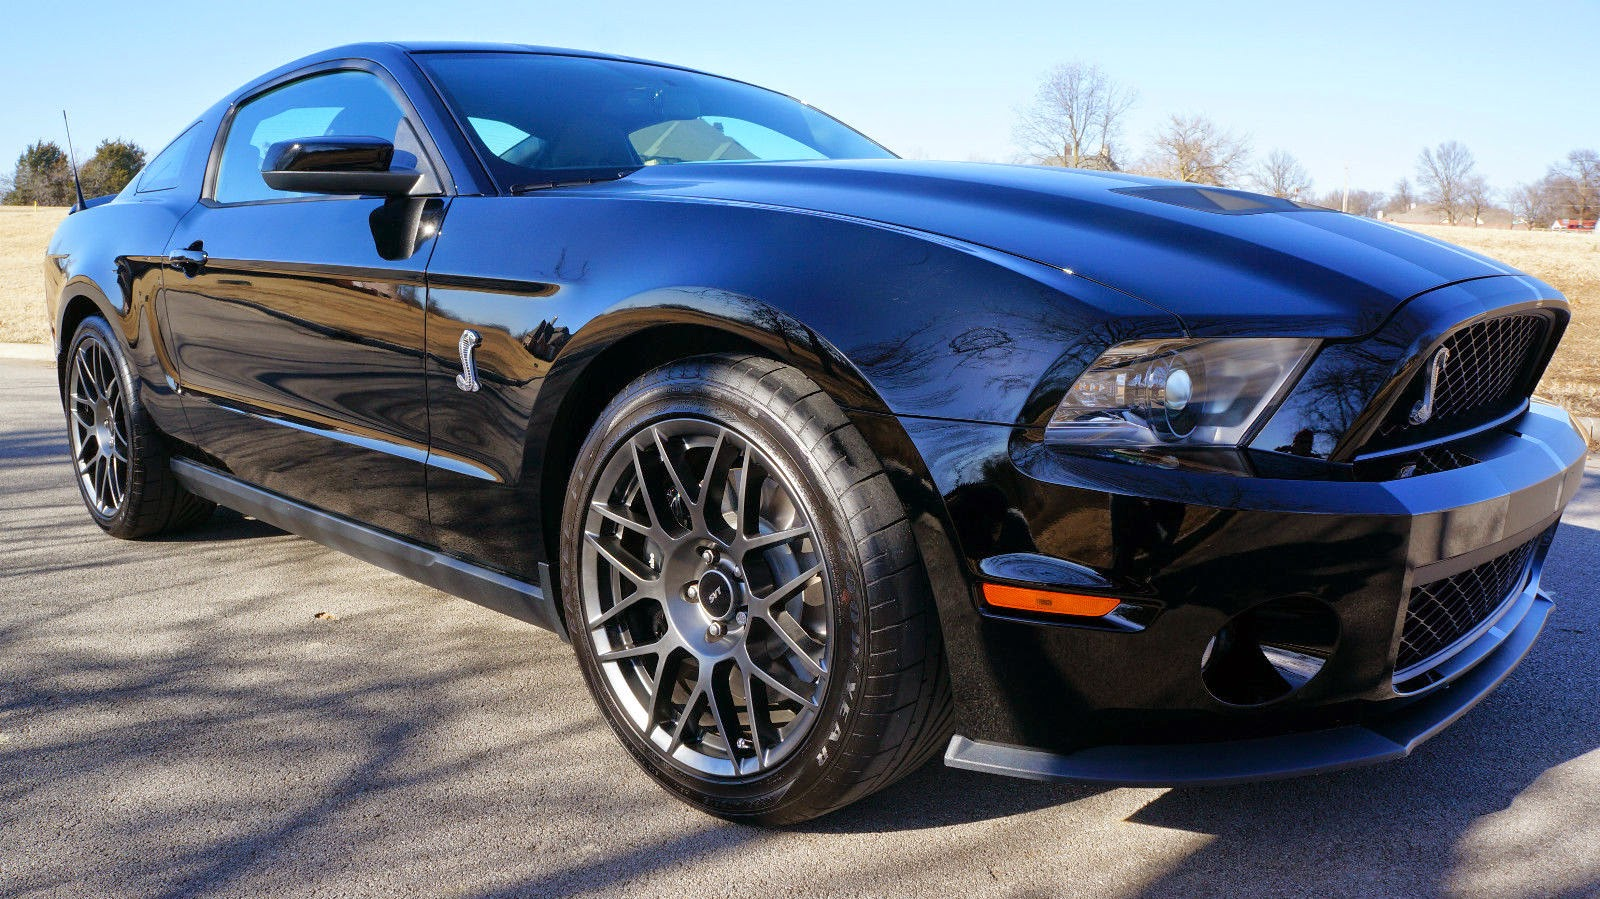 2012 ford mustang shelby cobra gt500 for sale american muscle cars